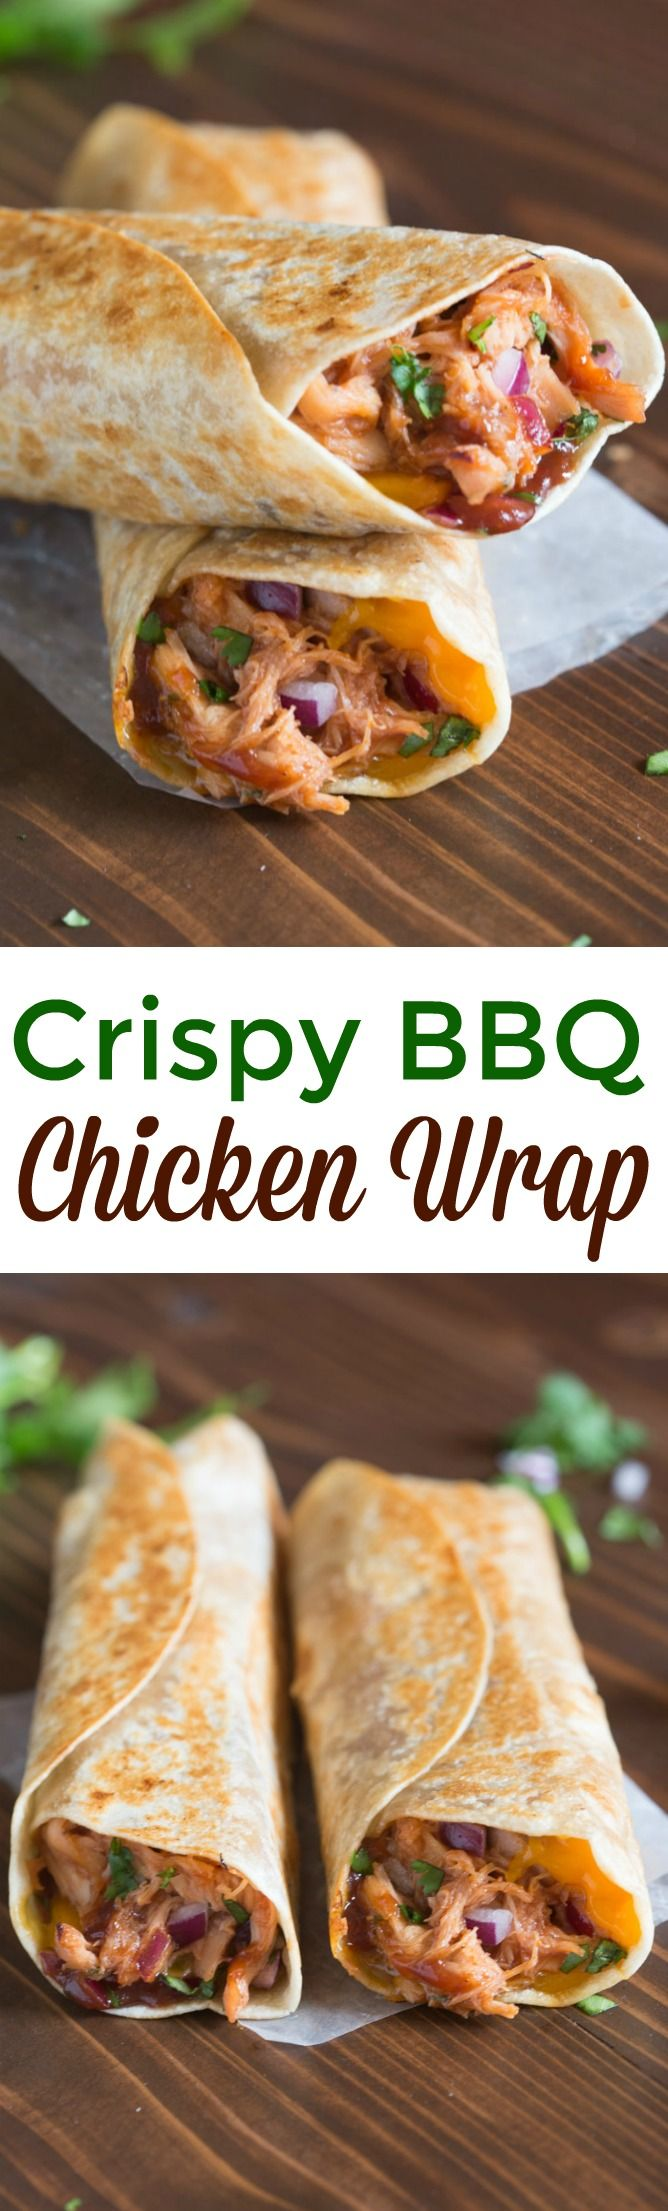 Crispy BBQ Chicken Wraps | tastesbetterfromscratch.com